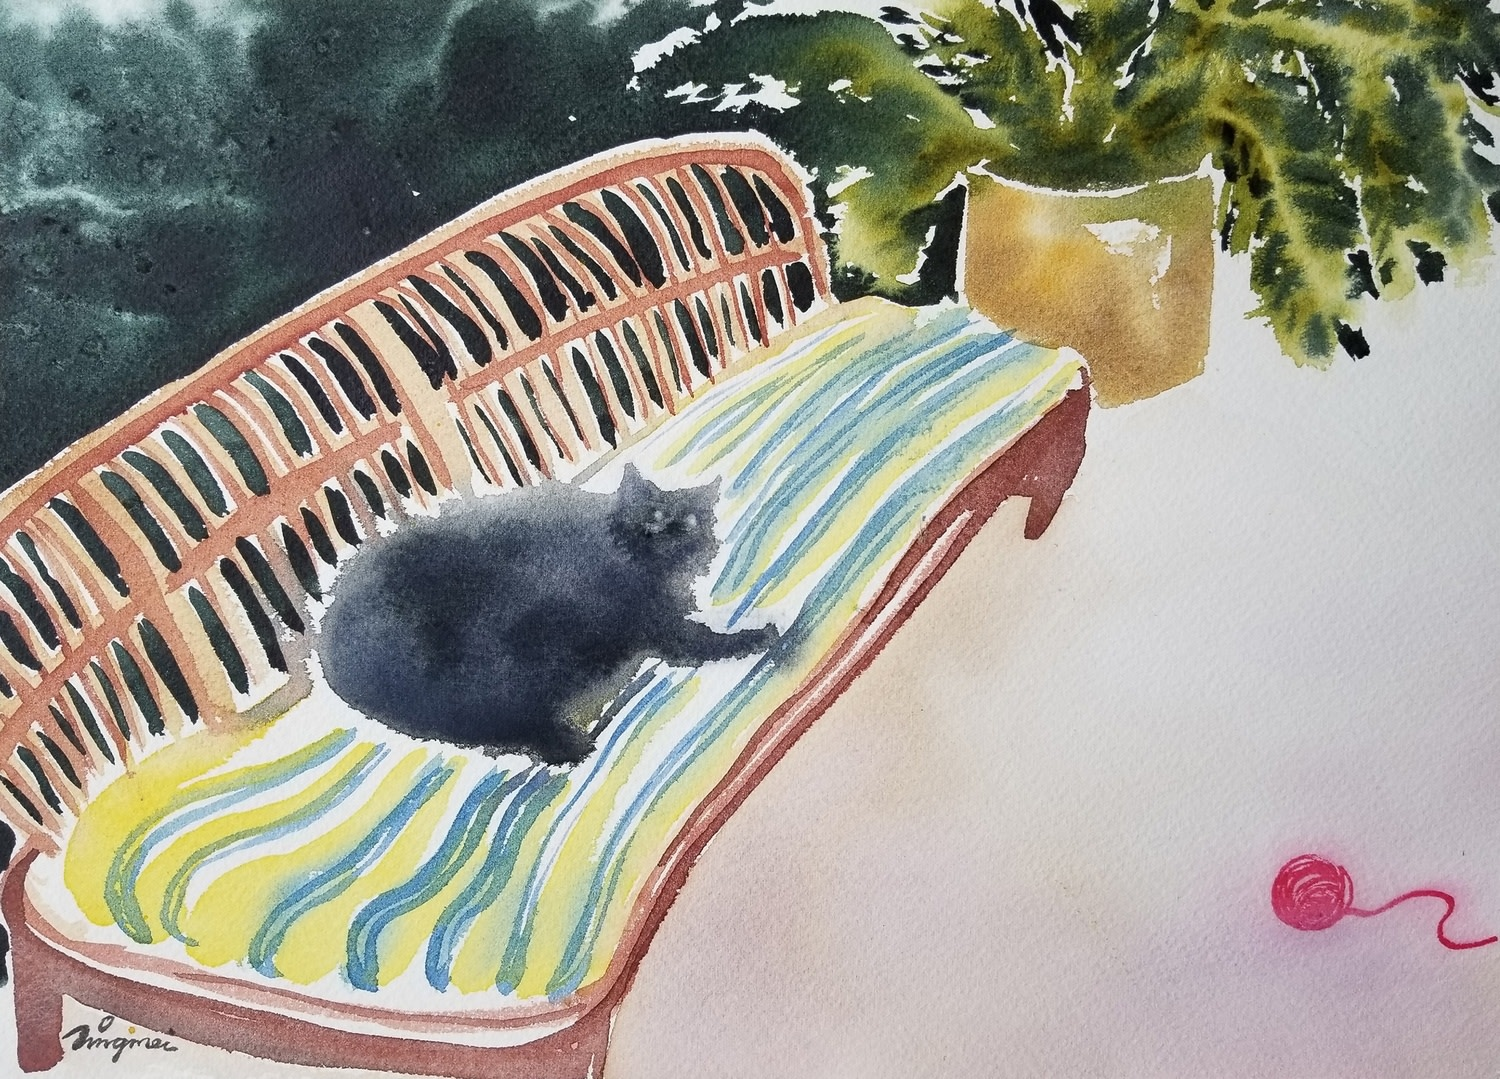 """<span class=""""link fancybox-details-link""""><a href=""""/exhibitions/36/works/image_standalone4834/"""">View Detail Page</a></span><p>Tingmei Cheung</p><p><em>It's Sunday</em></p><p>watercolour</p><p>£1000</p><p></p><p>Judge's Choice</p><p>Selected by Tim Sayer</p><p>Journalist & Art Collector</p><p></p><p>Judge's Choice</p><p>Selected by Jill Leman PRWS</p><p>RWS Artist & President</p>"""